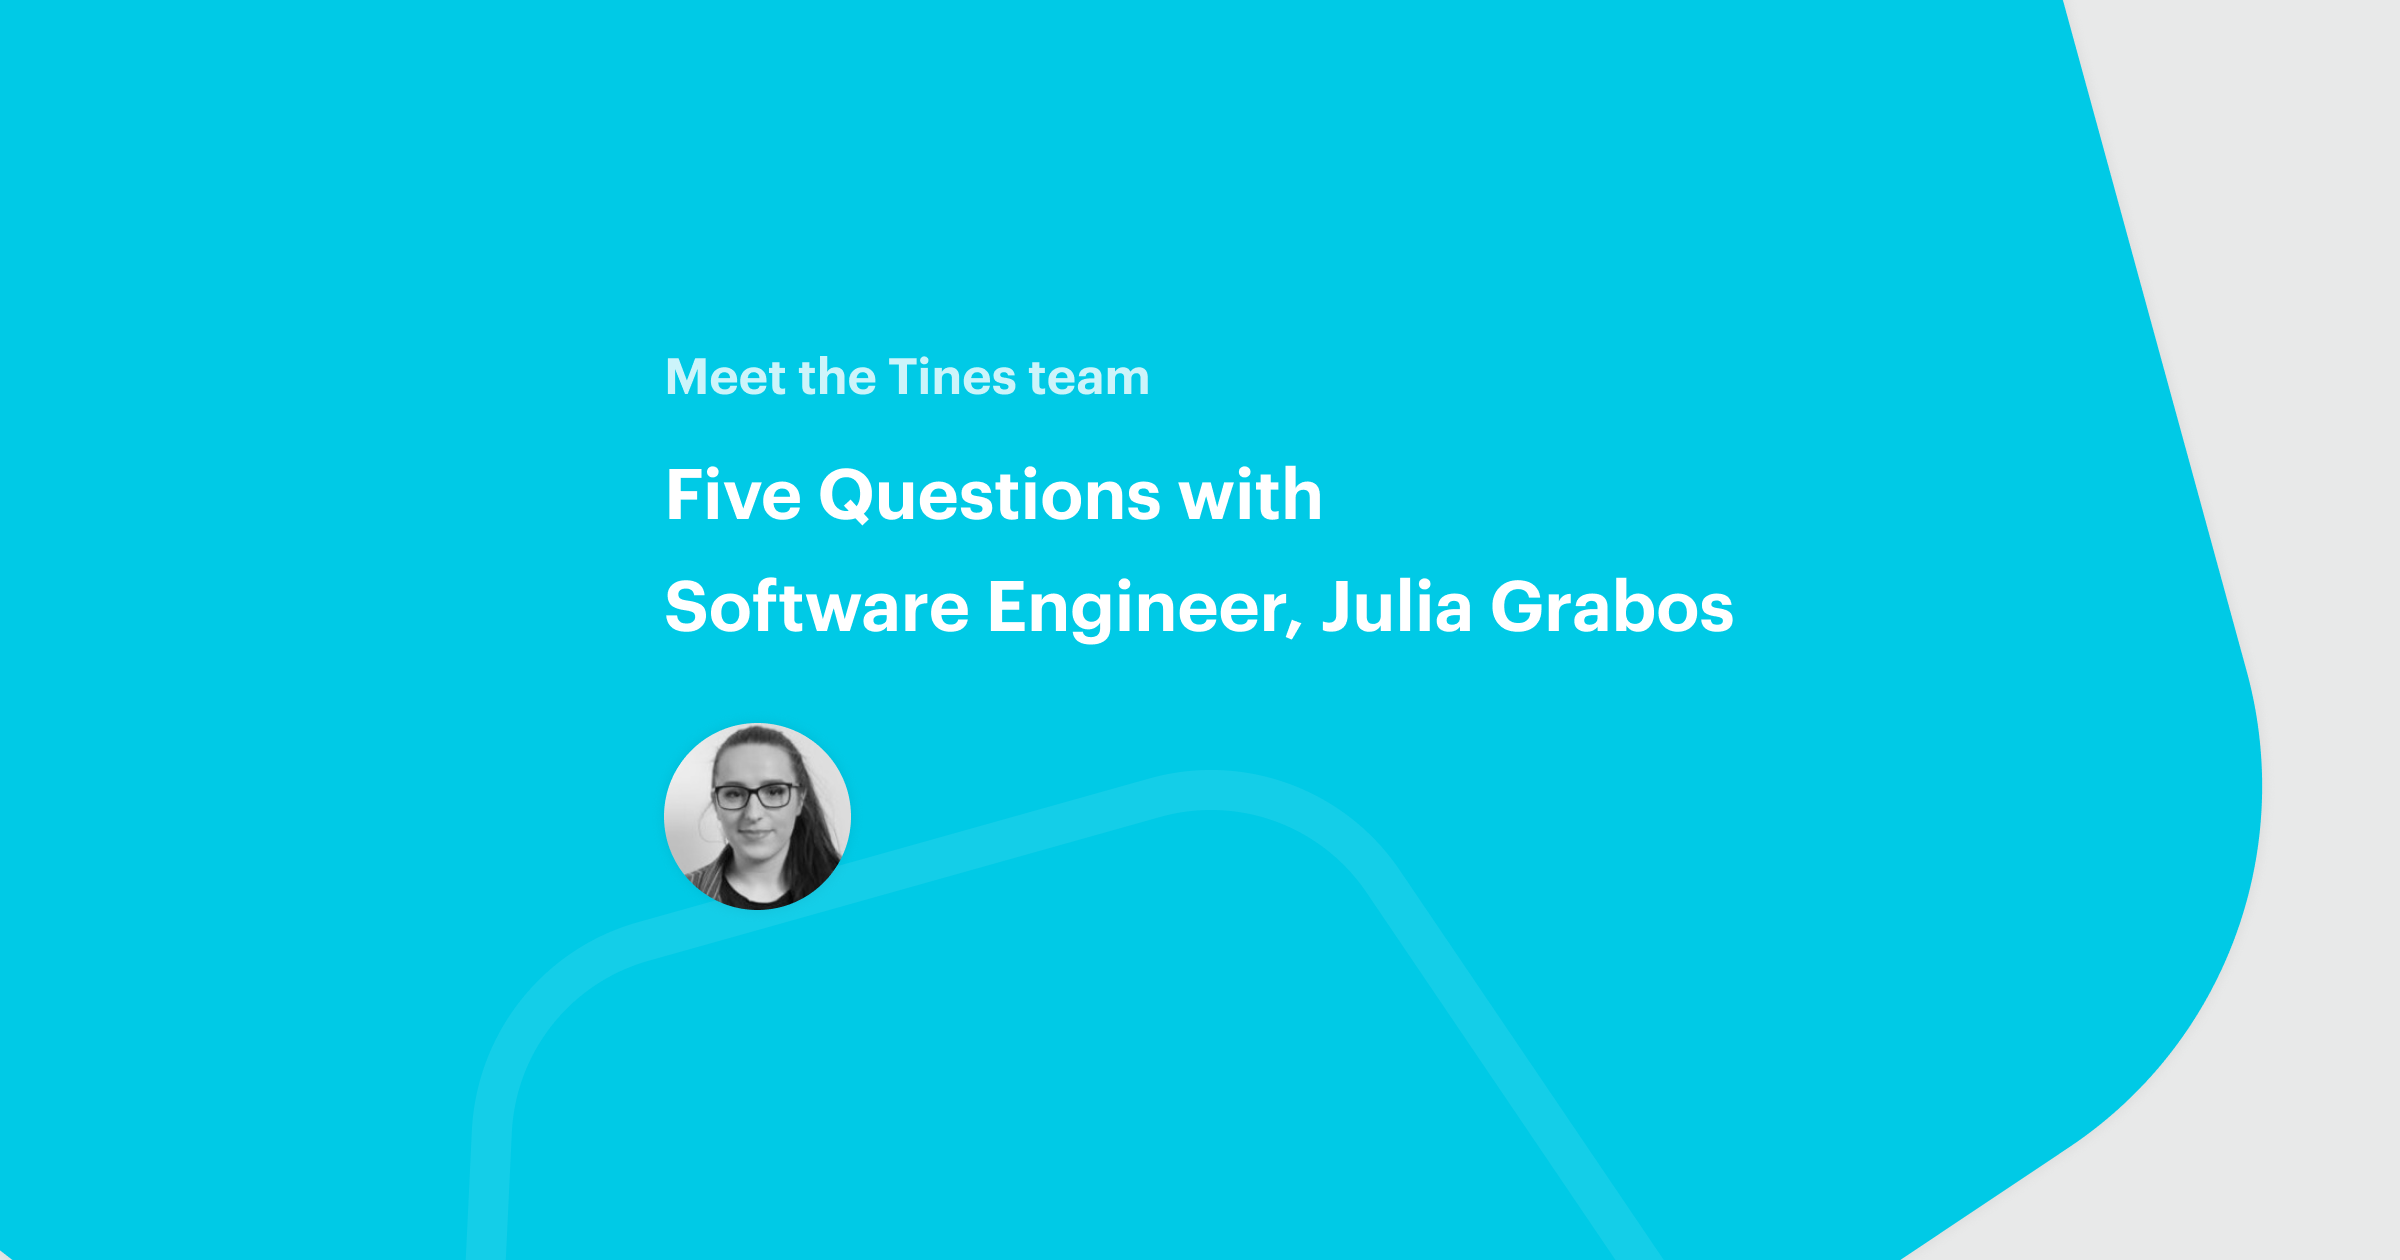 Five Questions with Software Engineer Julia Grabos